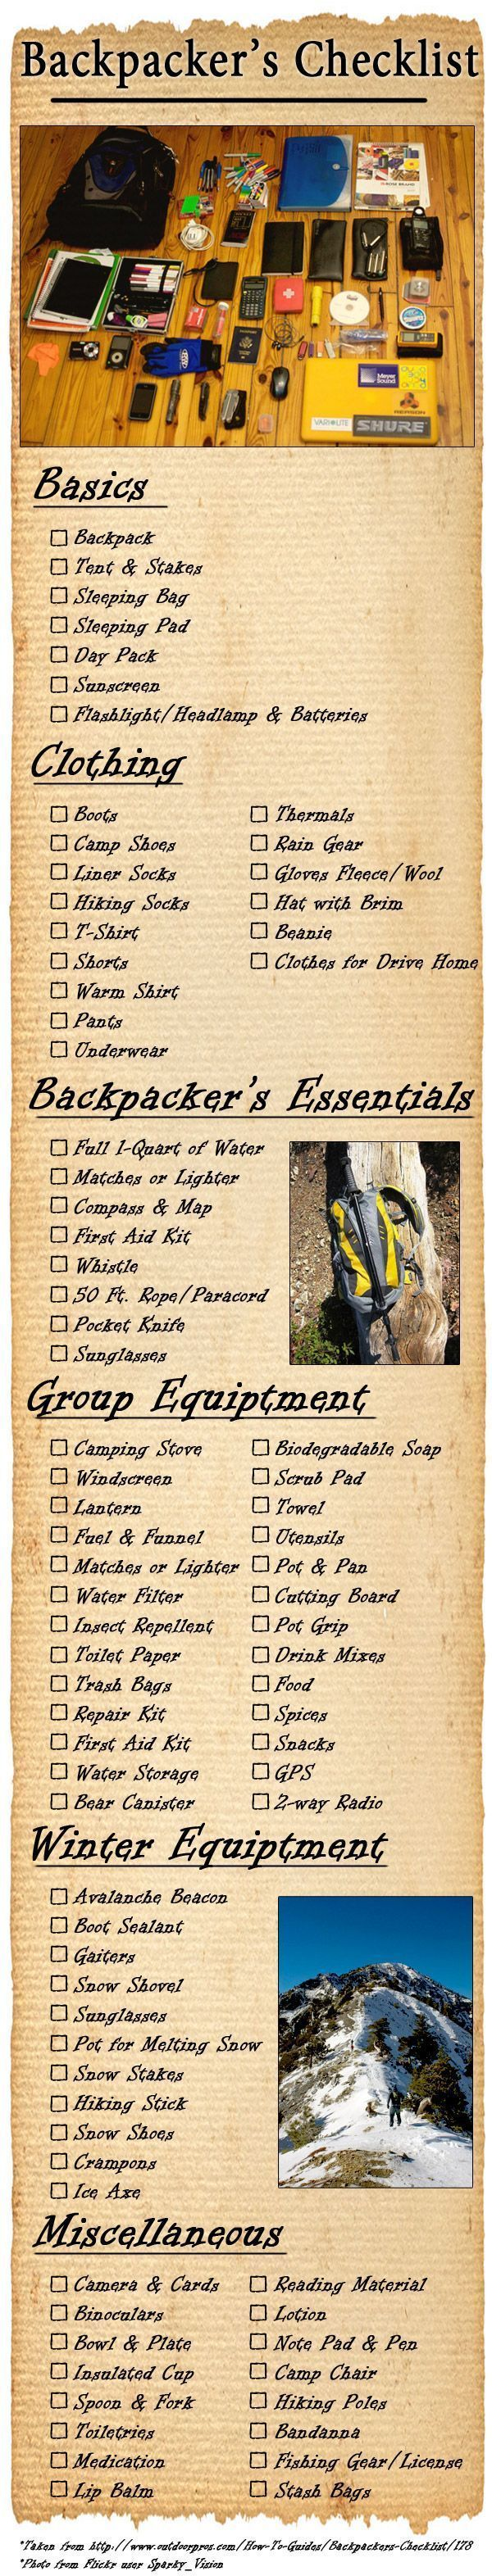 Backpacker's checklist, great resource so you don't forget anything on your next adventure.